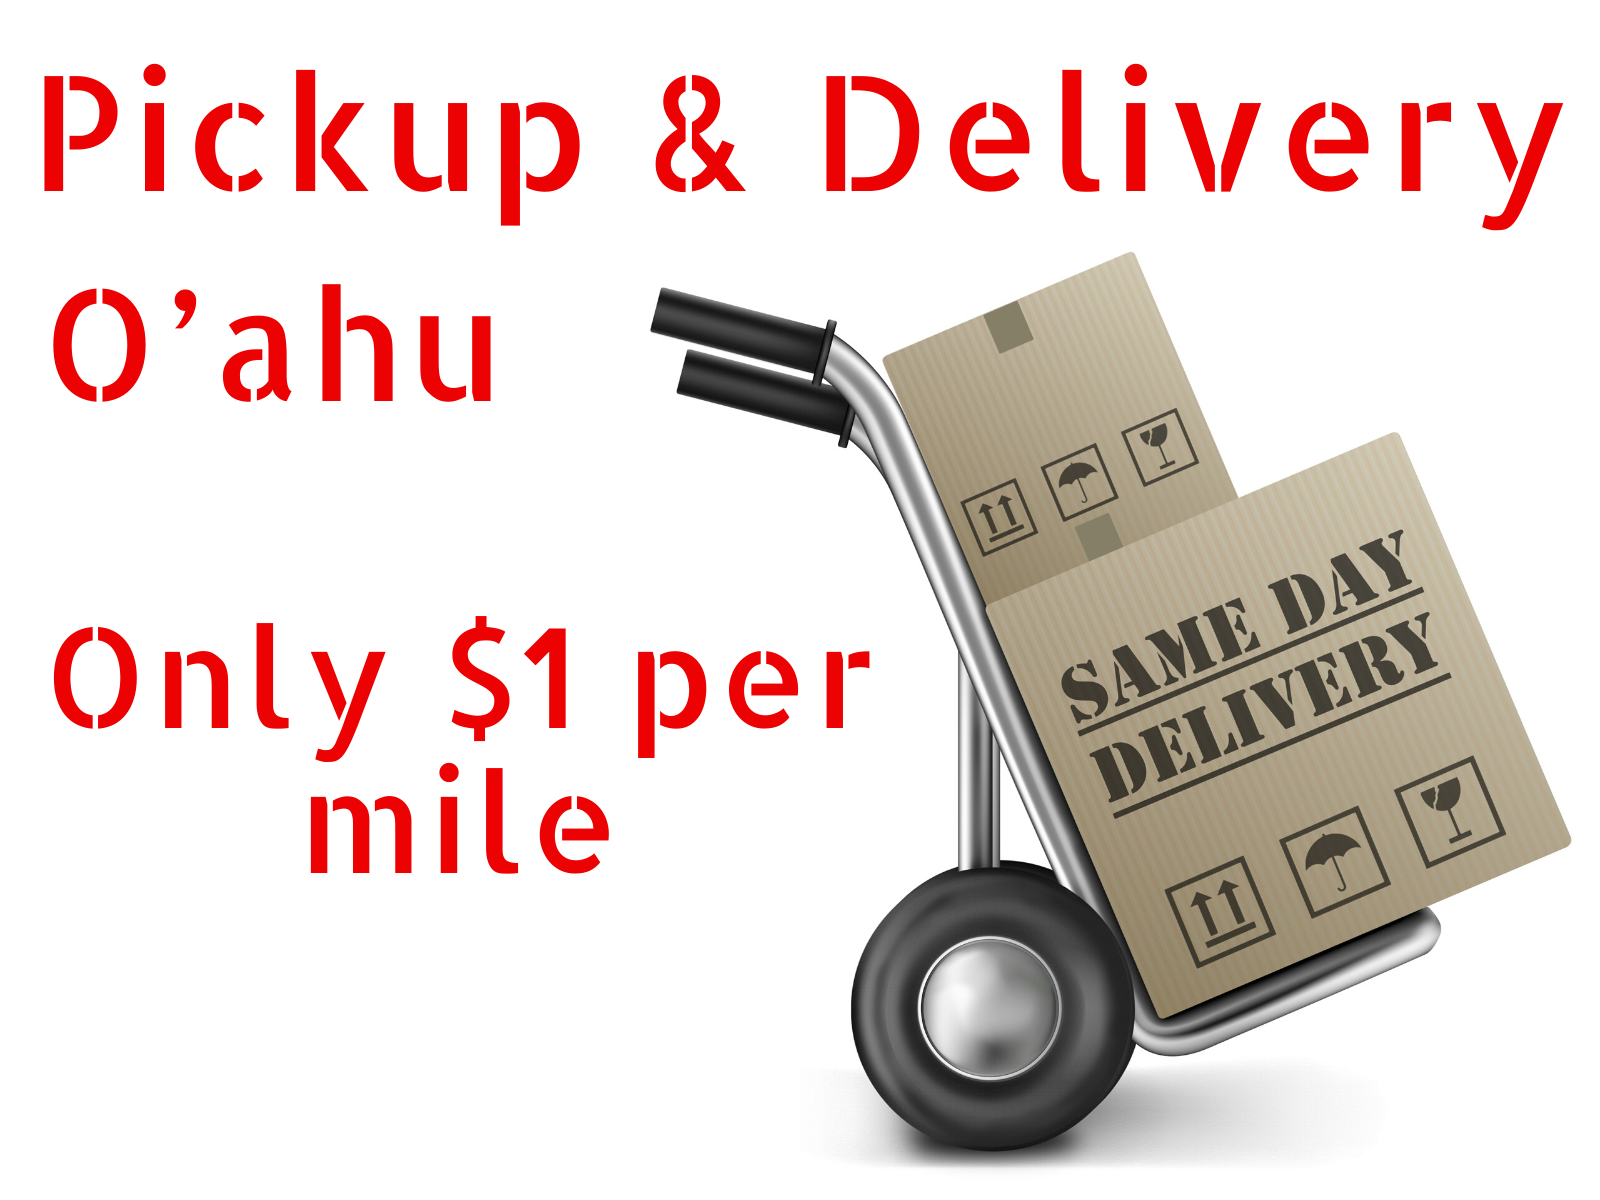 Oahu Courier Service - Pick up and Delivery